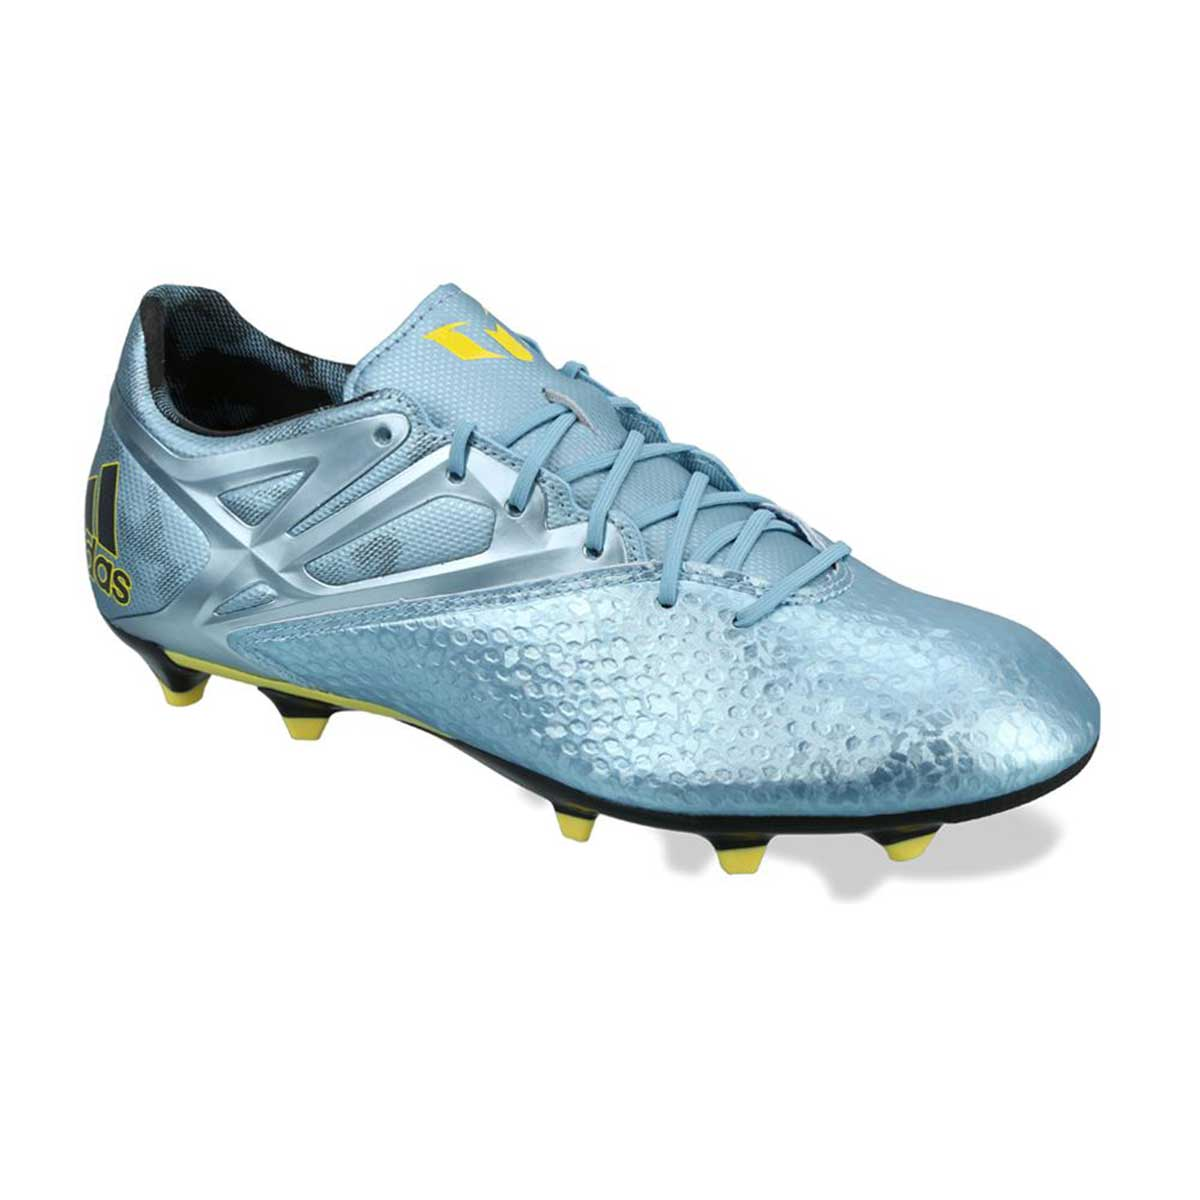 084d0ff0e2a Buy Adidas Messi 15.2 FG AG Football Shoes Online in India